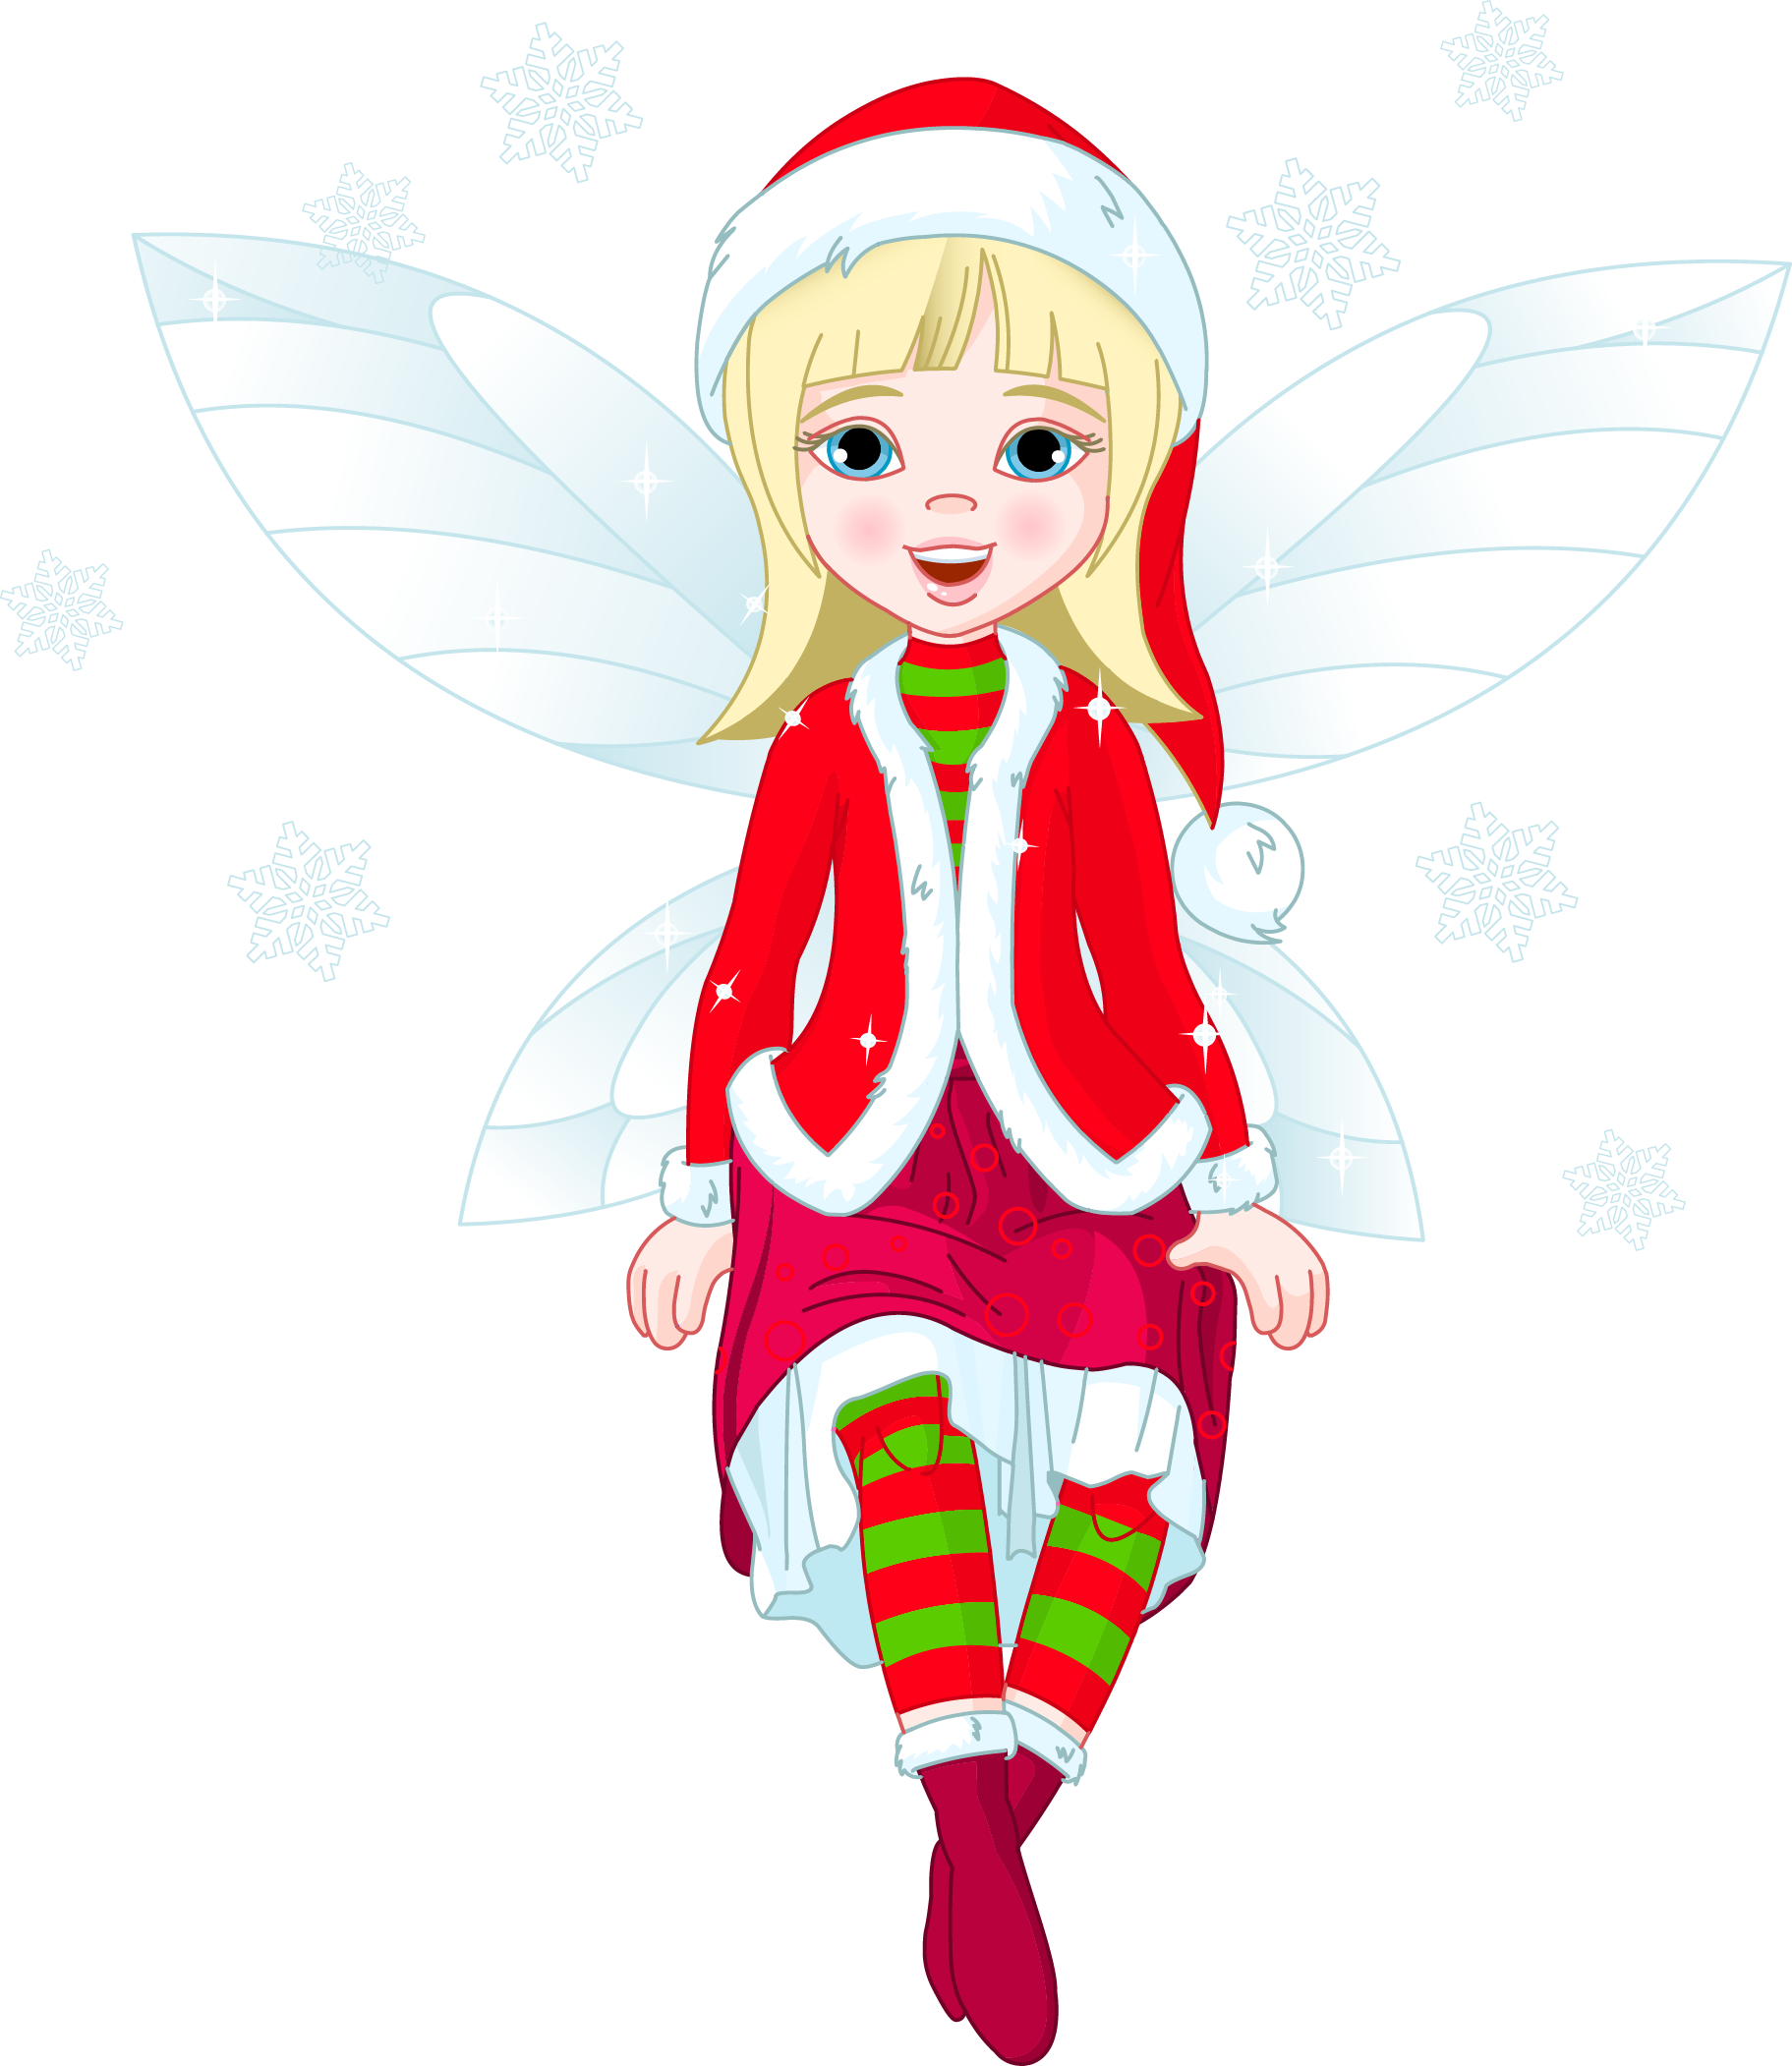 Elf clipart traditional. Pin by crafty annabelle